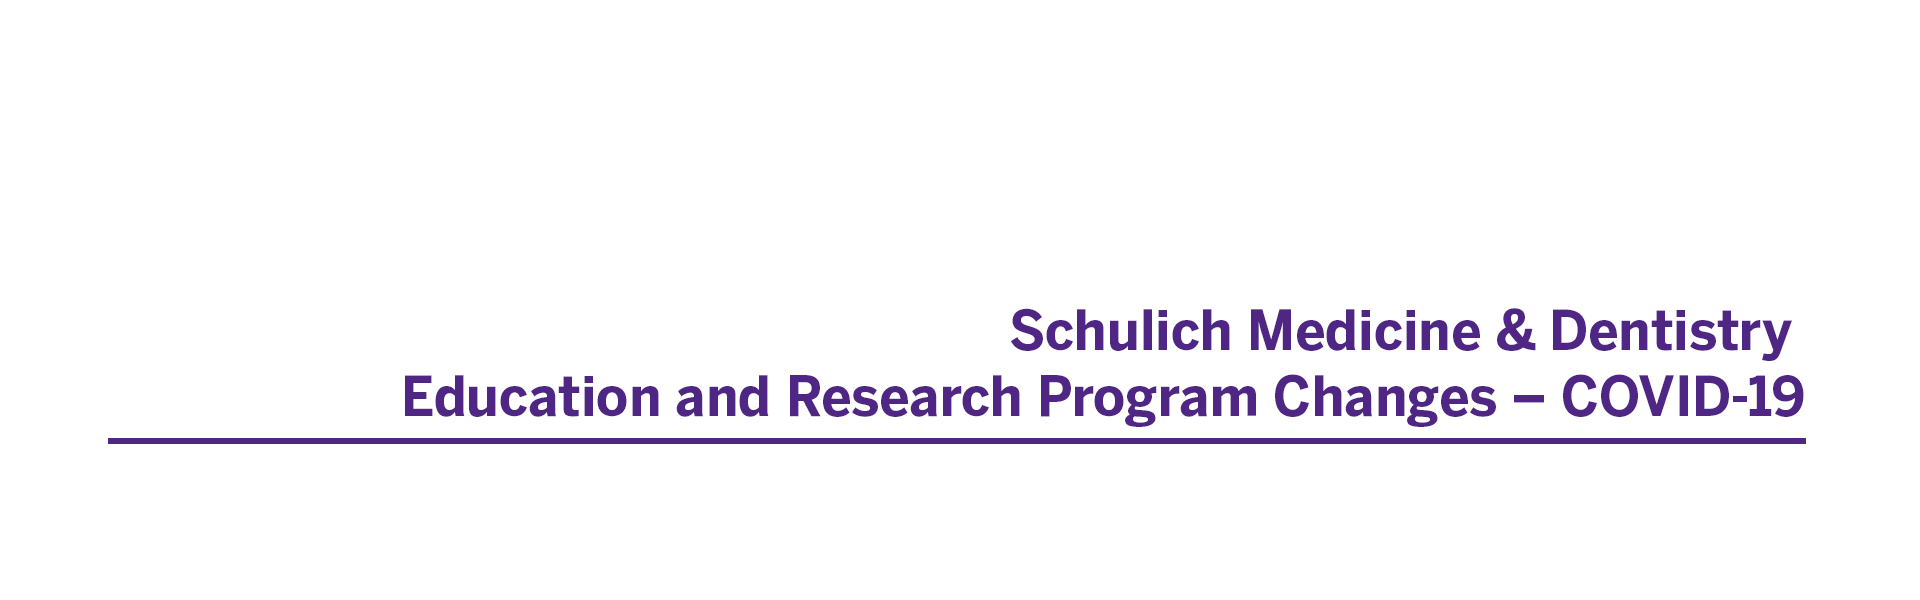 Schulich Medicine & Dentistry Education and Research Program Changes – COVID-19